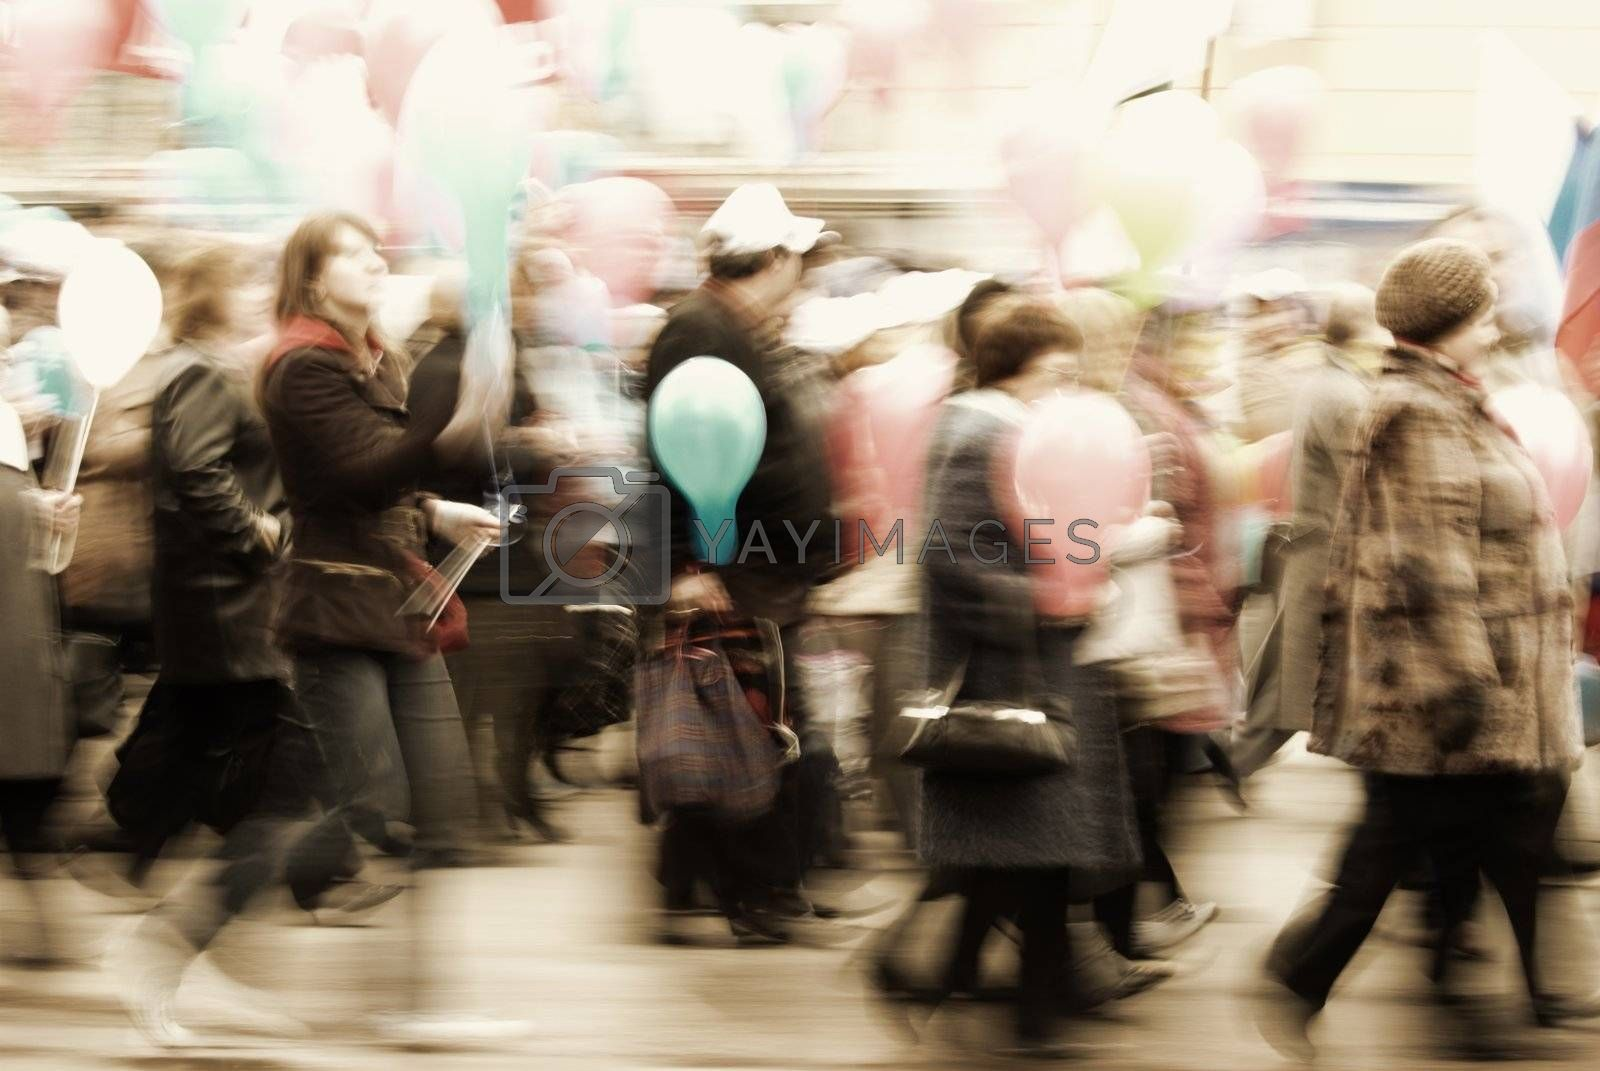 special photo toned and blur-motion f/x